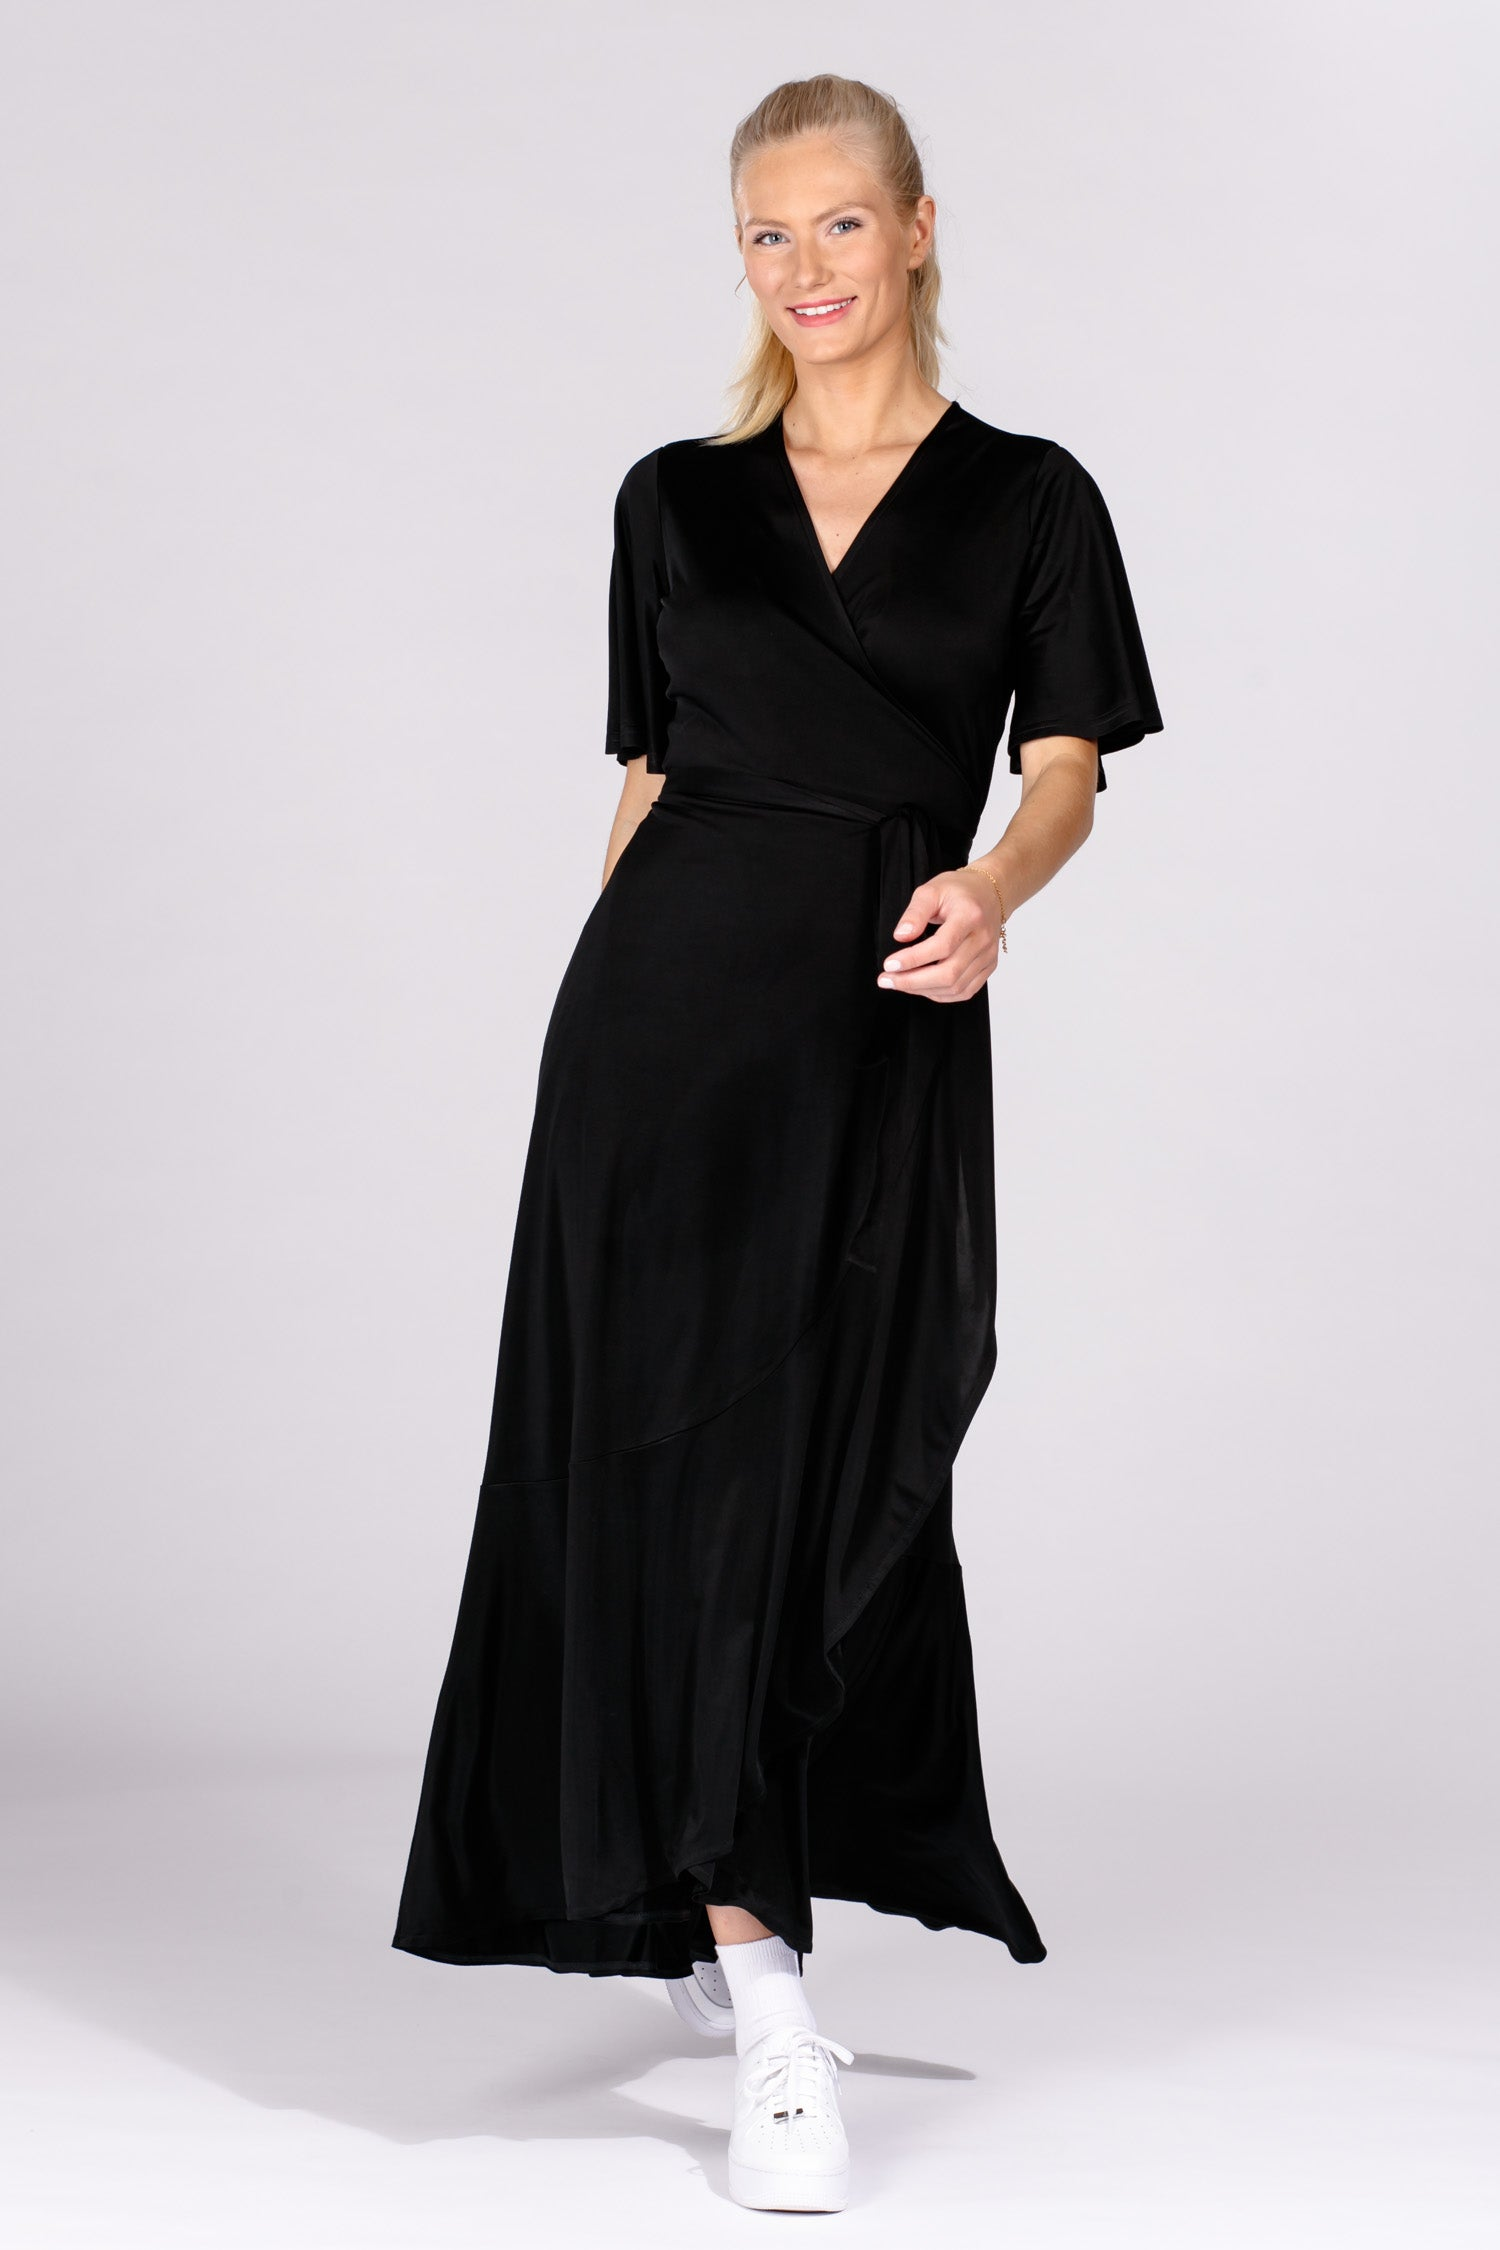 Sephora maxi dress - Black